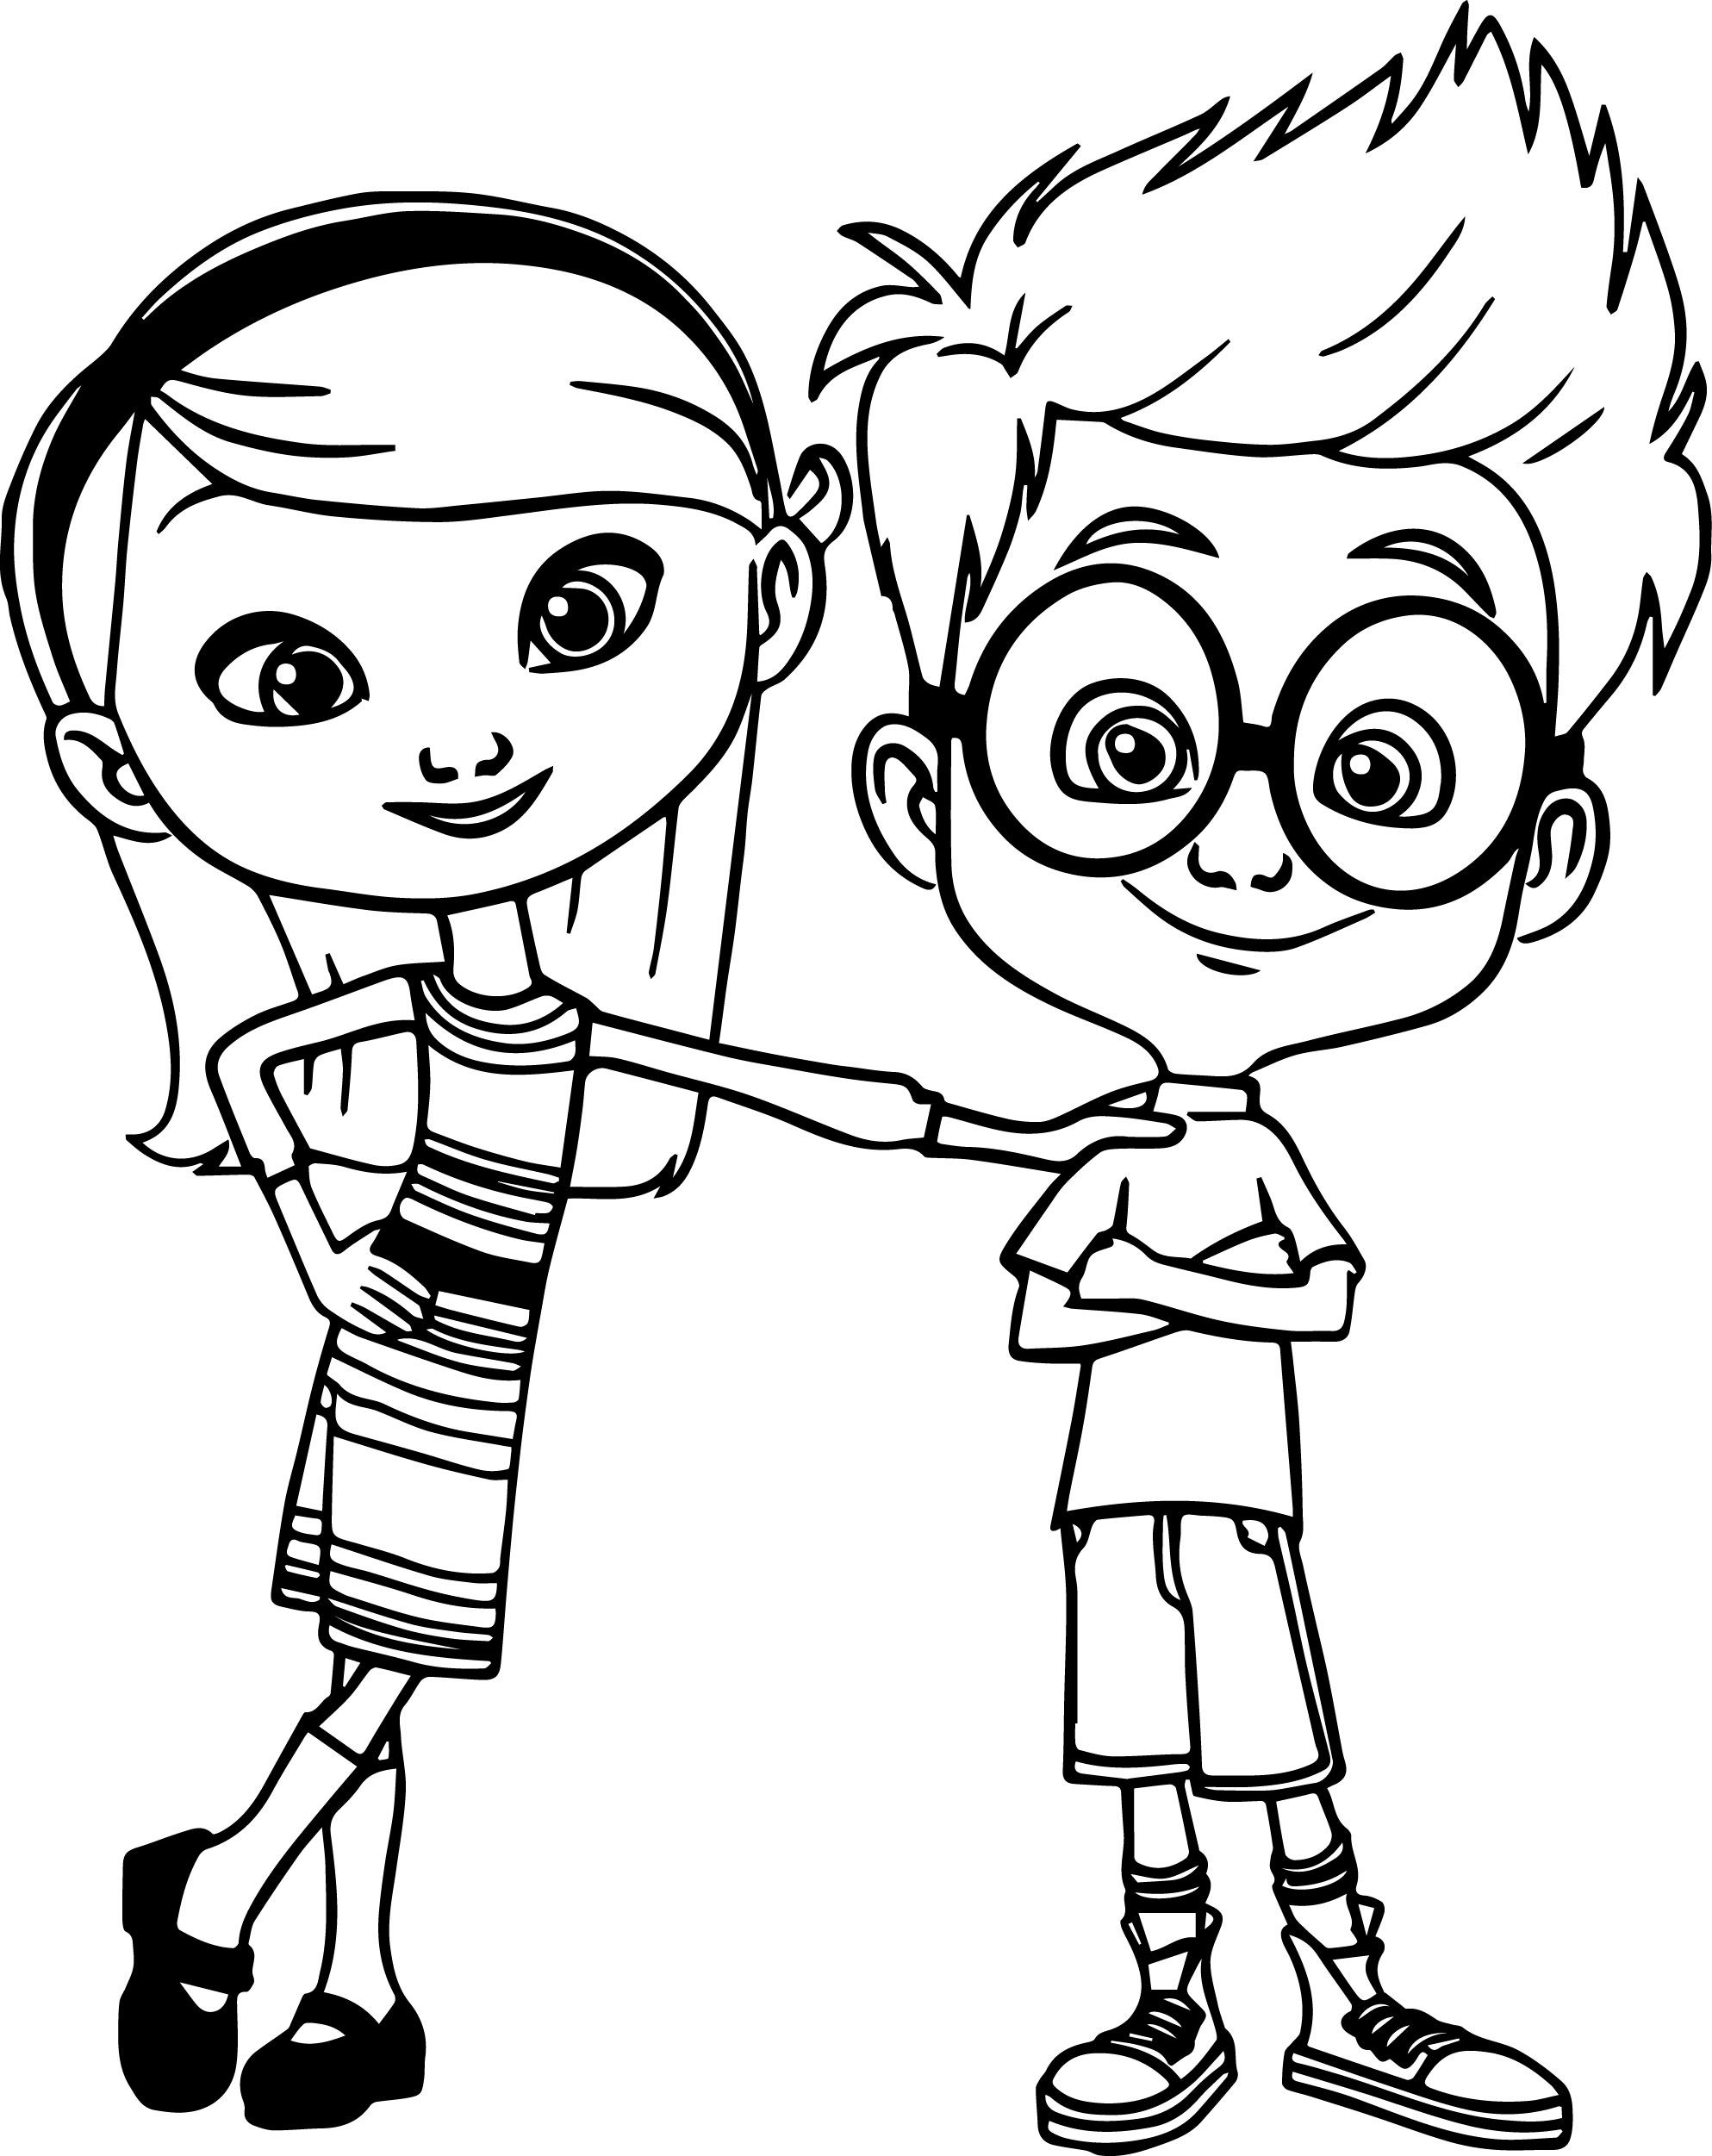 Mr Peabody Coloring Pages Coloring Pages For Kids